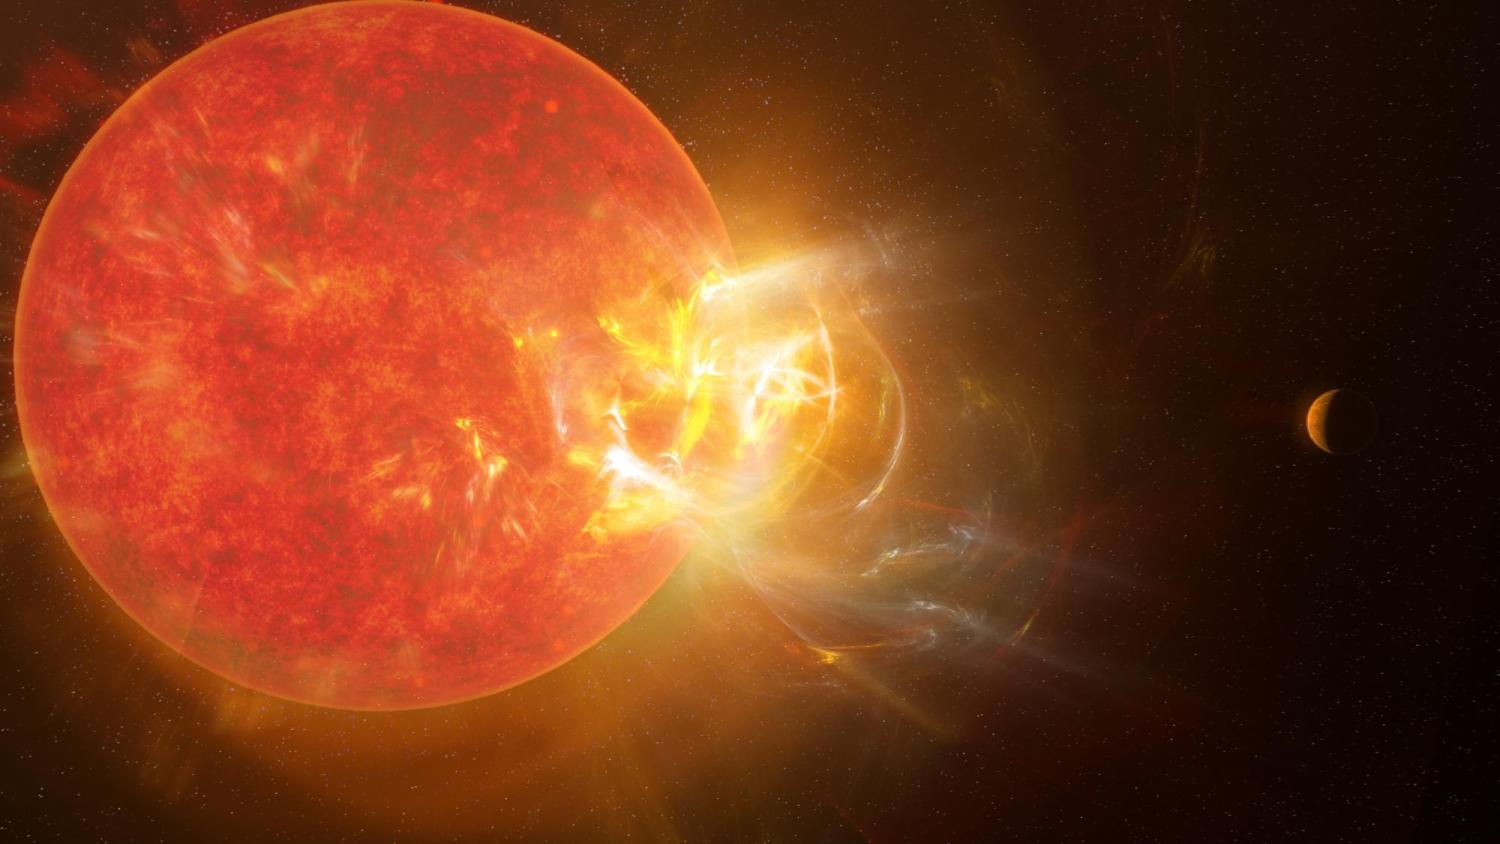 Artist's conception of a flare ejecting from a star with a planet nearby